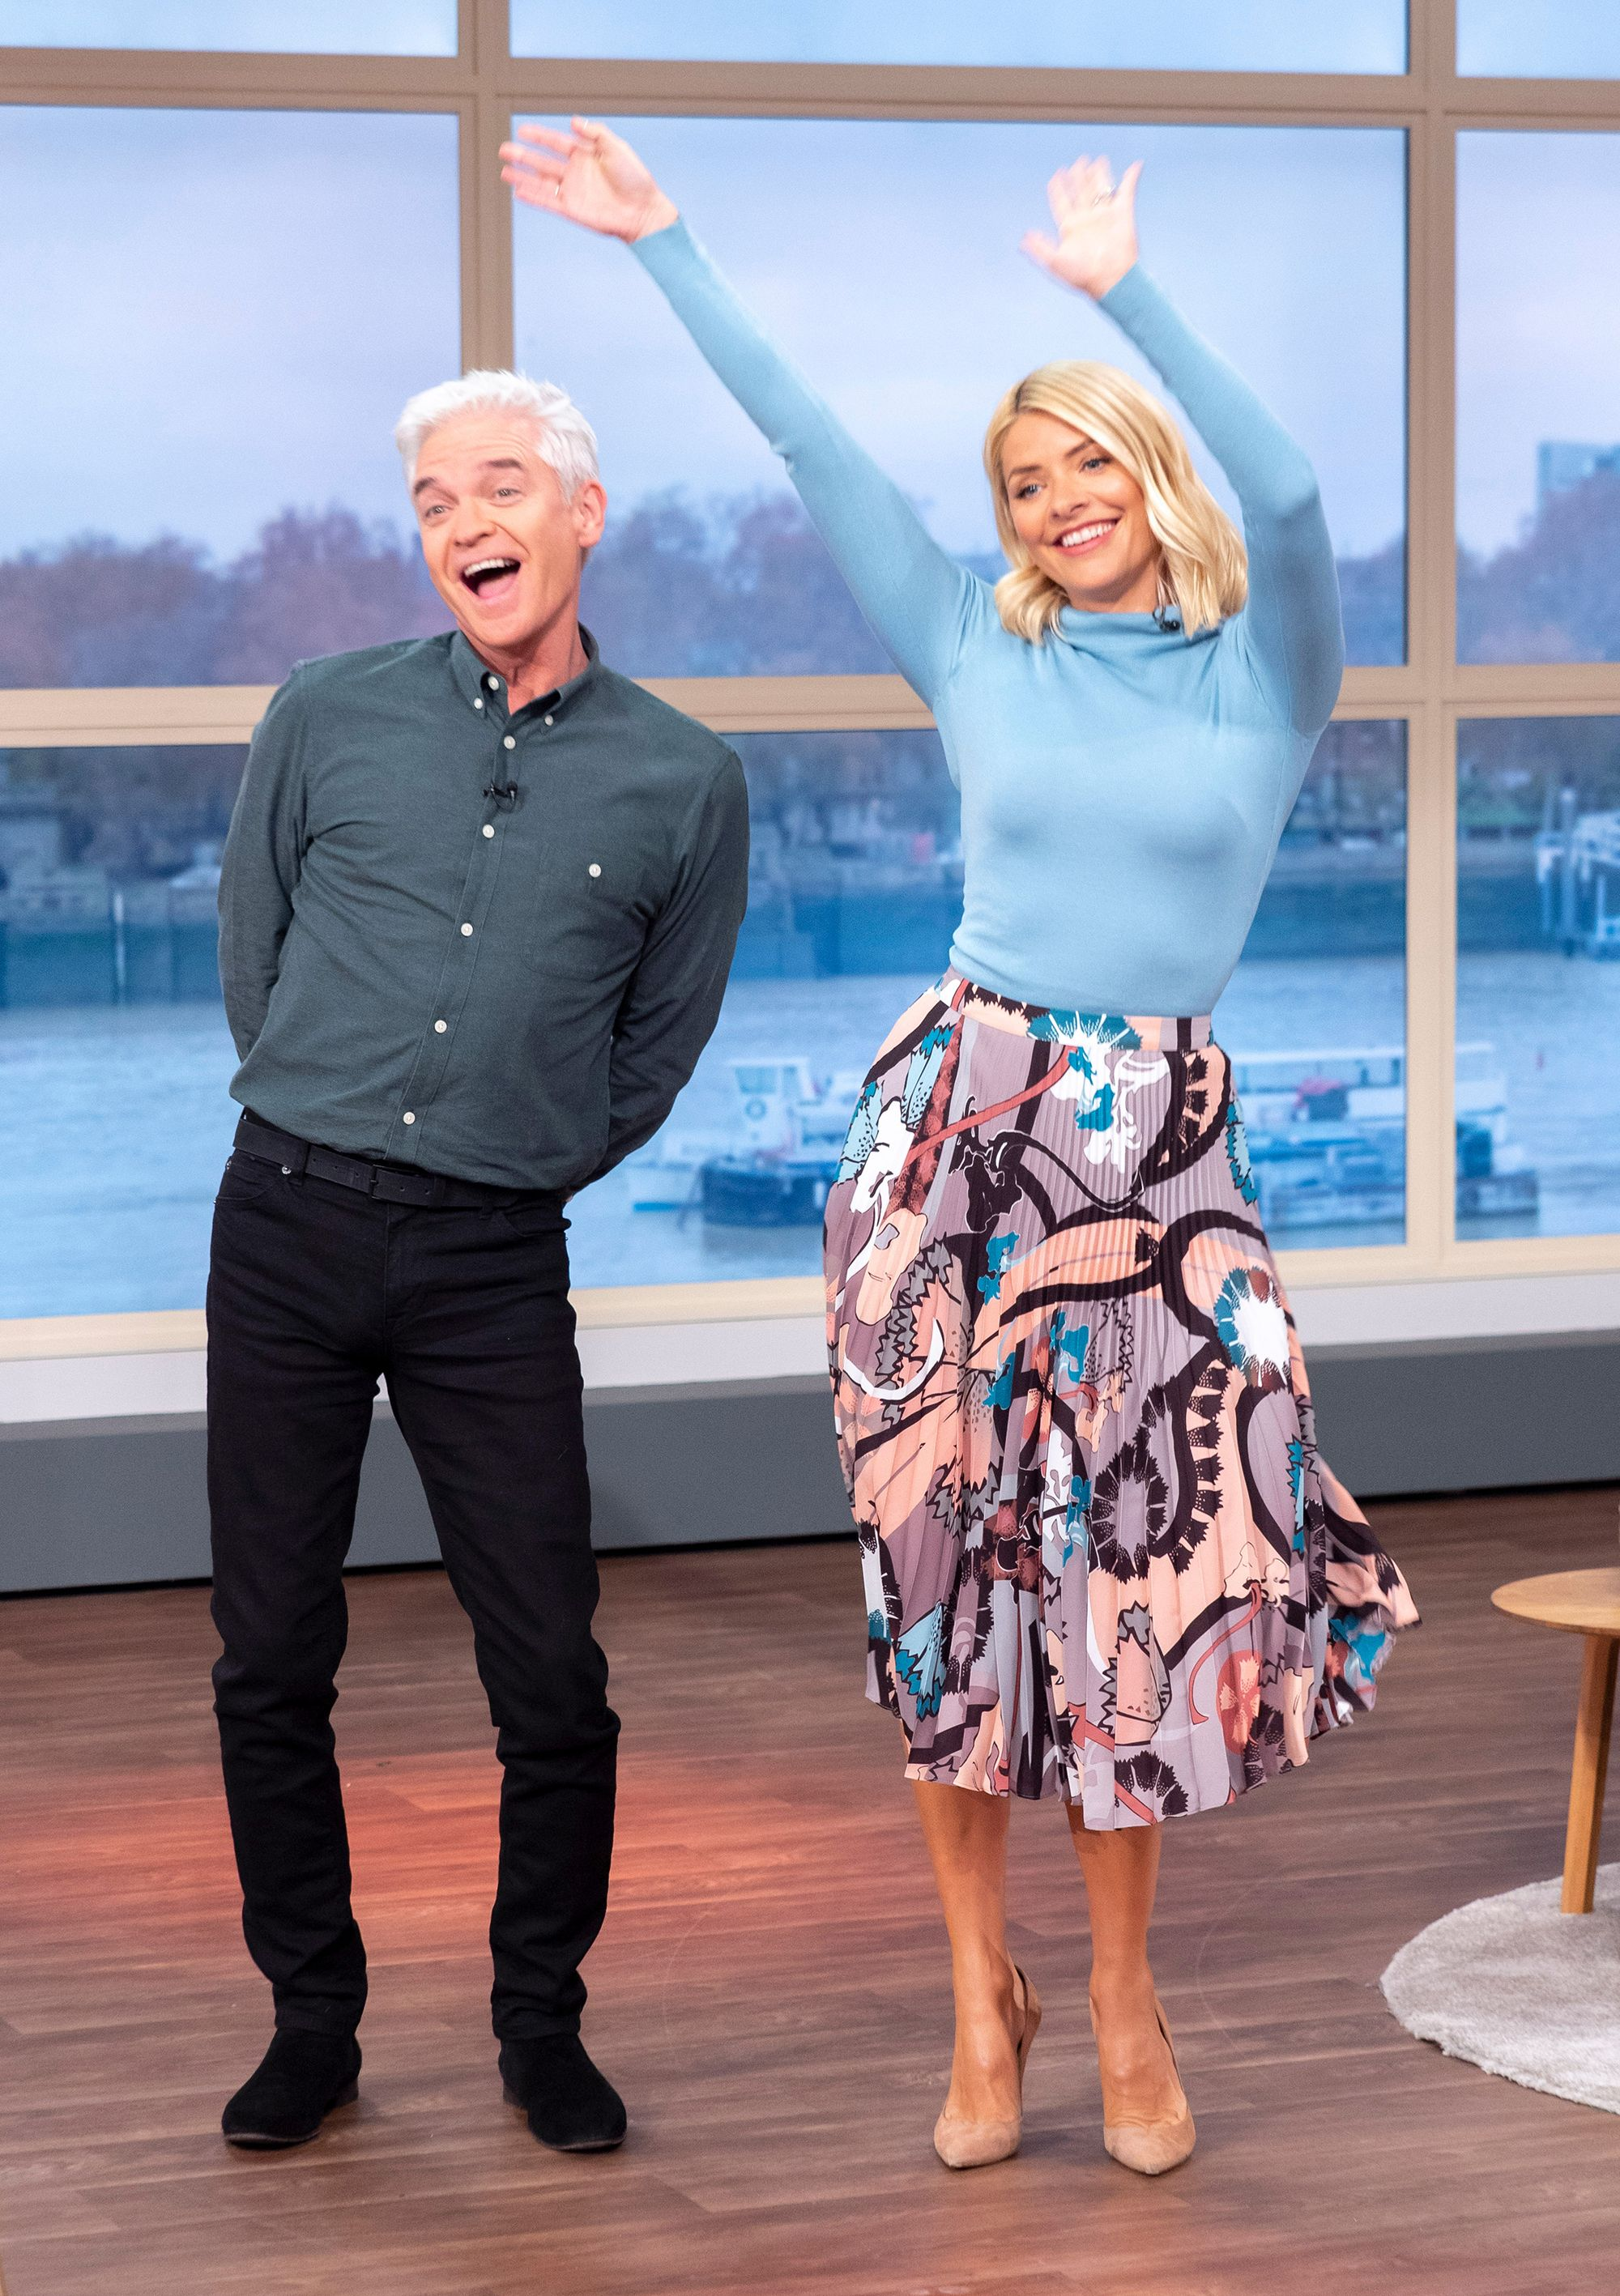 00a5608b7d Philip Schofield gave this hilarious welcome to Holly Willoughby on This  Morning